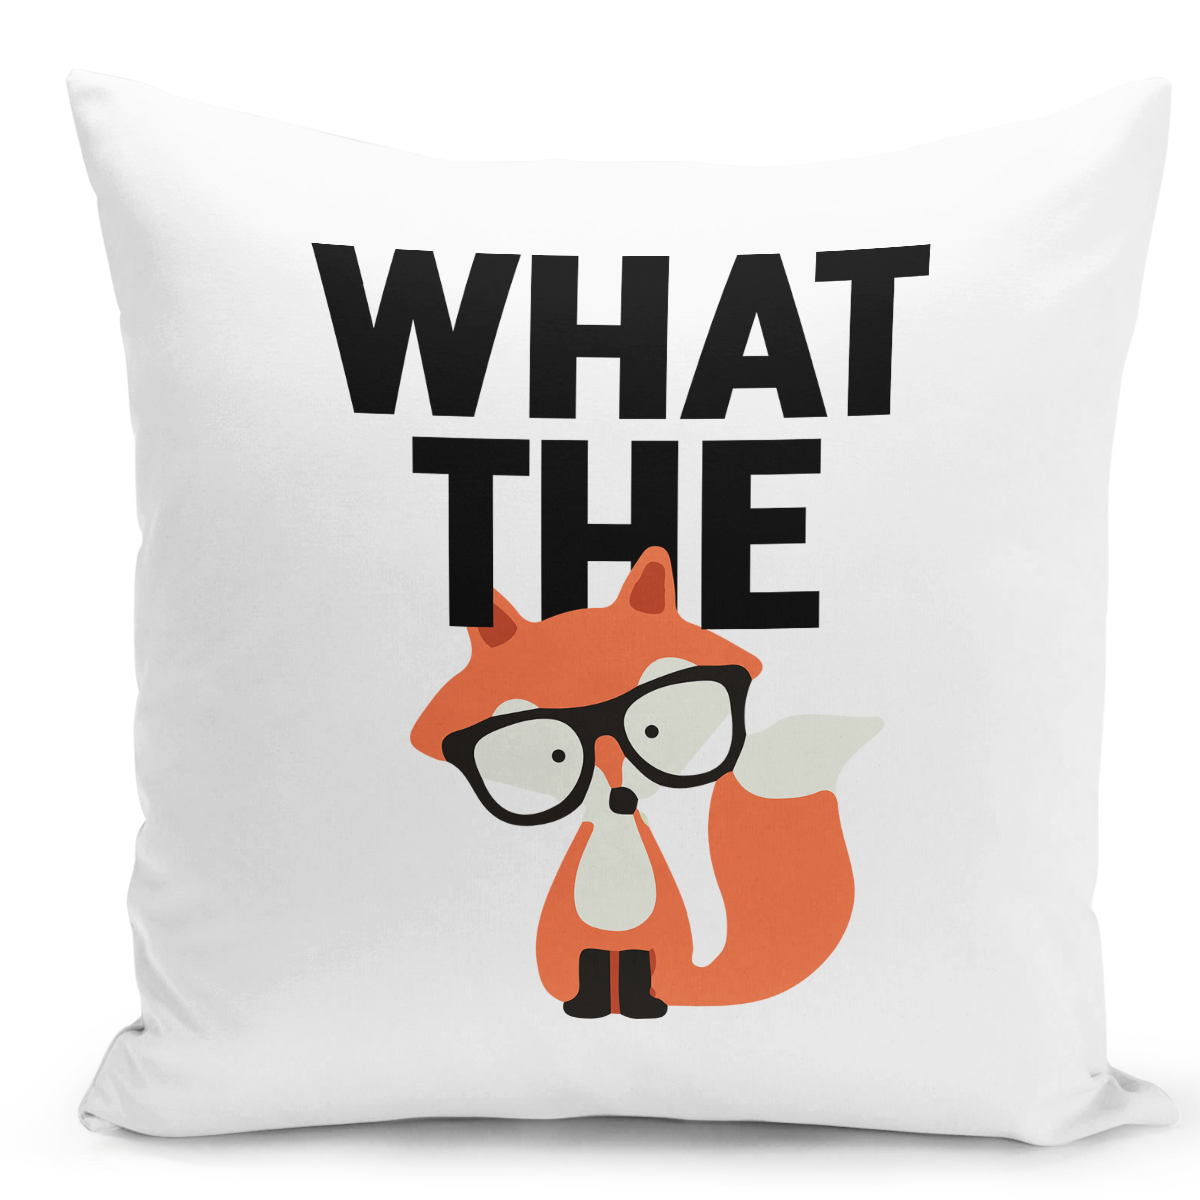 16x16-inch-Throw-Pillow-for-Home-Decor-with-Stuffing-What-The-Fox-Nerdy-Friend-